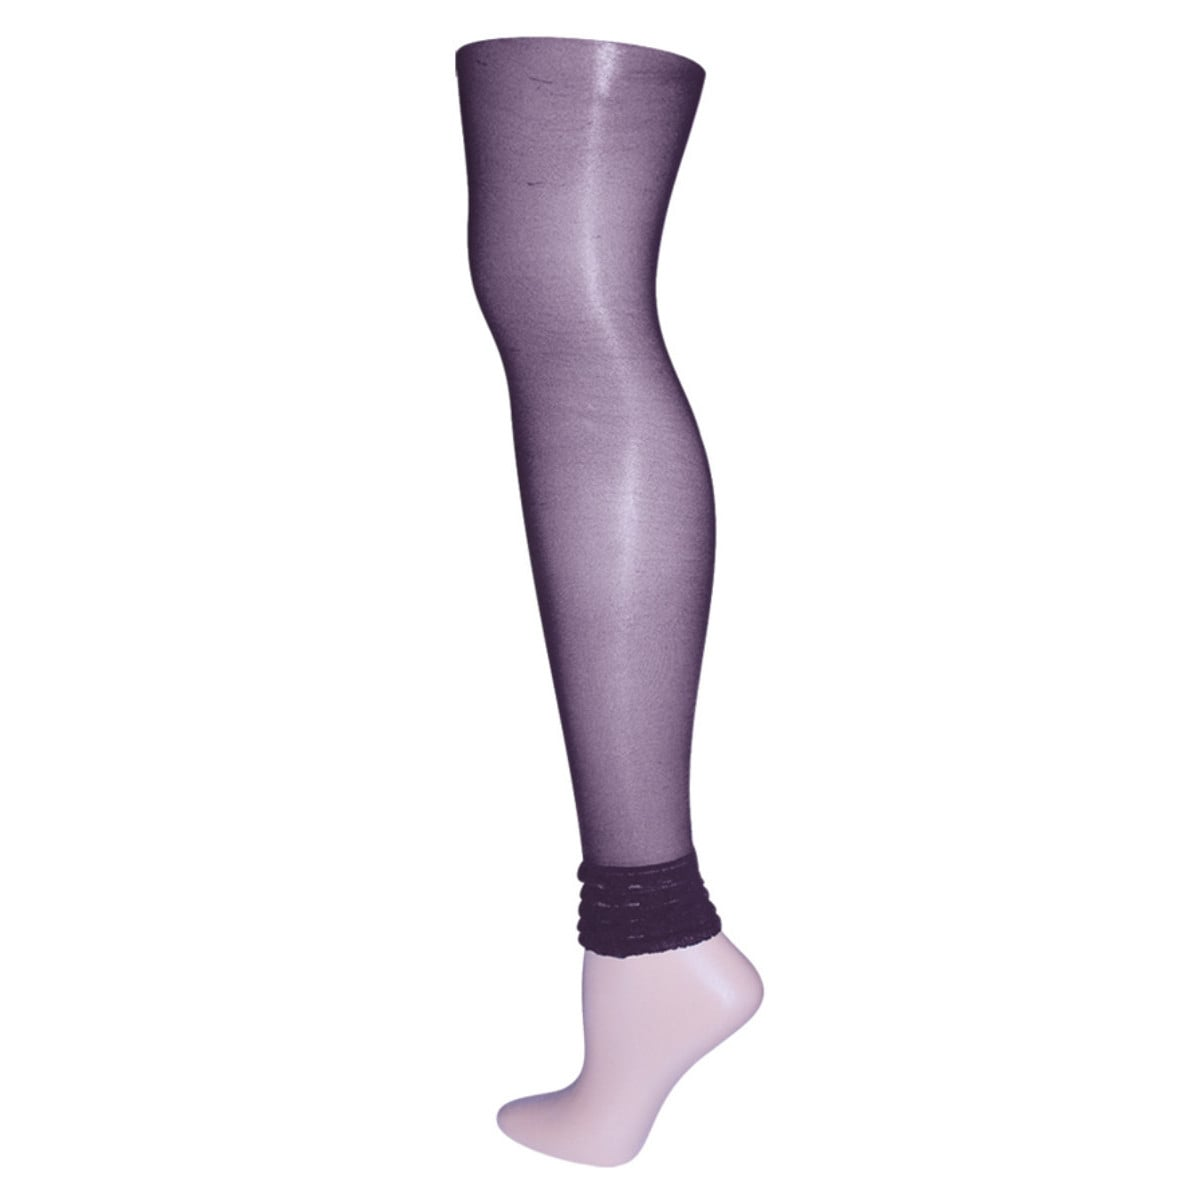 036c64e65 Shop Memoi Women s Layered Ruffles Sheer Footless Tights - Free Shipping On Orders  Over  45 - Overstock - 11143156